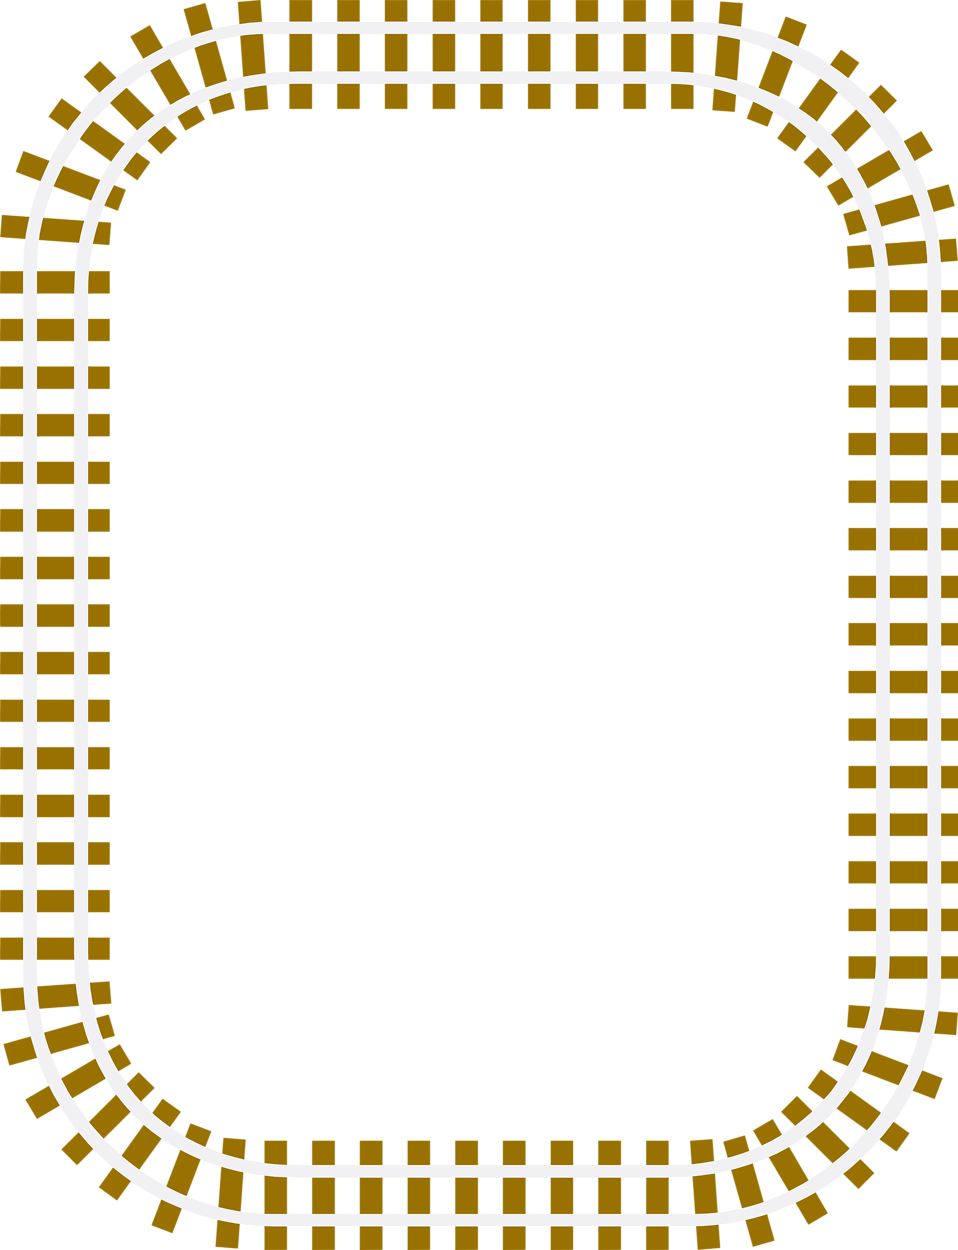 Illustration of a blank railroad track fraem border.